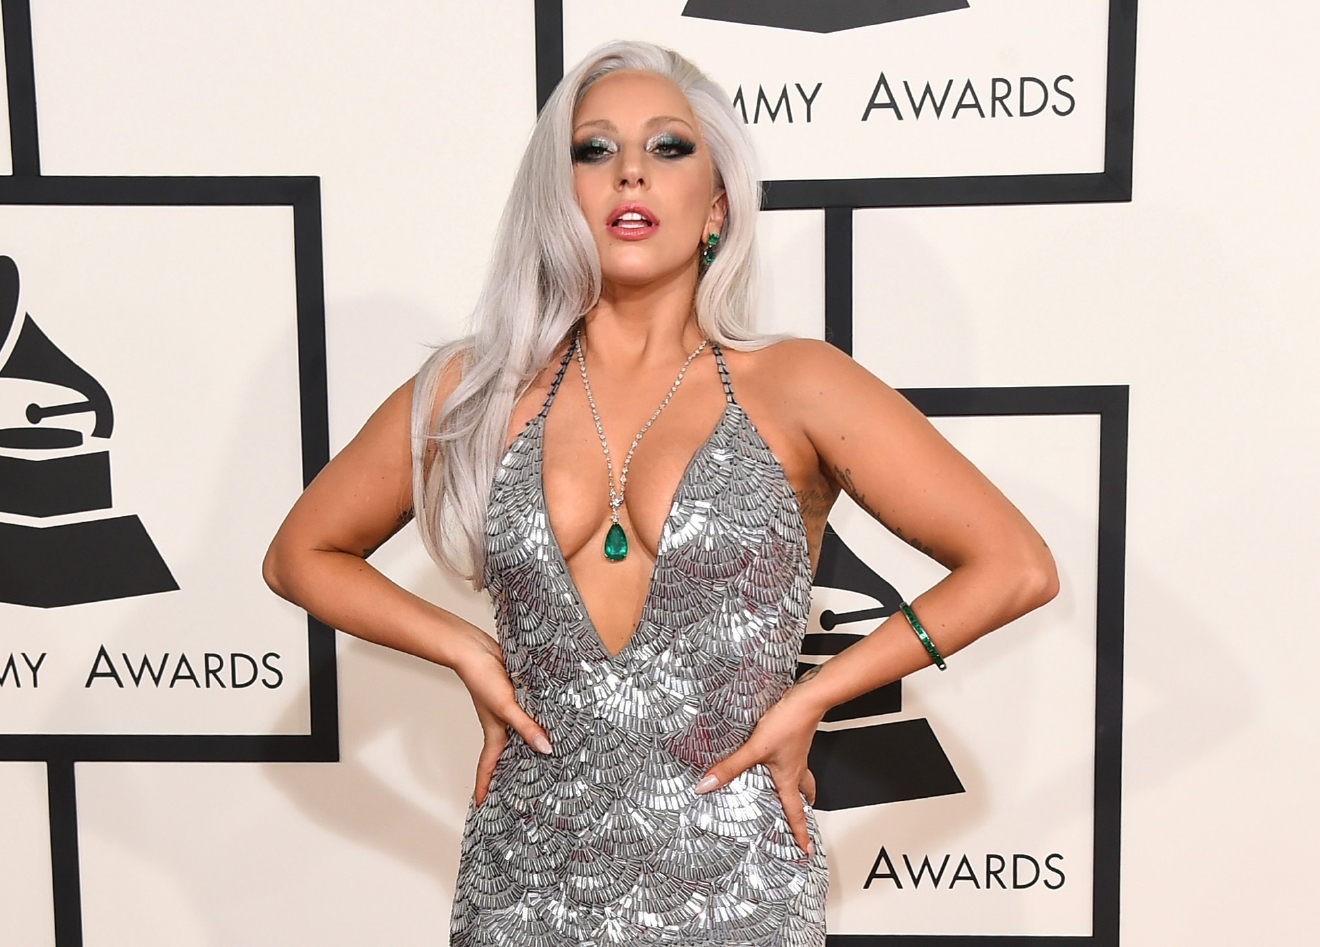 FILE - In this Feb. 8, 2015 file photo, Lady Gaga arrives at the 57th annual Grammy Awards at the Staples Center in Los Angeles. In one generation, gray hair has gone from being an unavoidable marker of middle age to an optional and openly discussed fashion choice. (Photo by Jordan Strauss/Invision/AP, File)